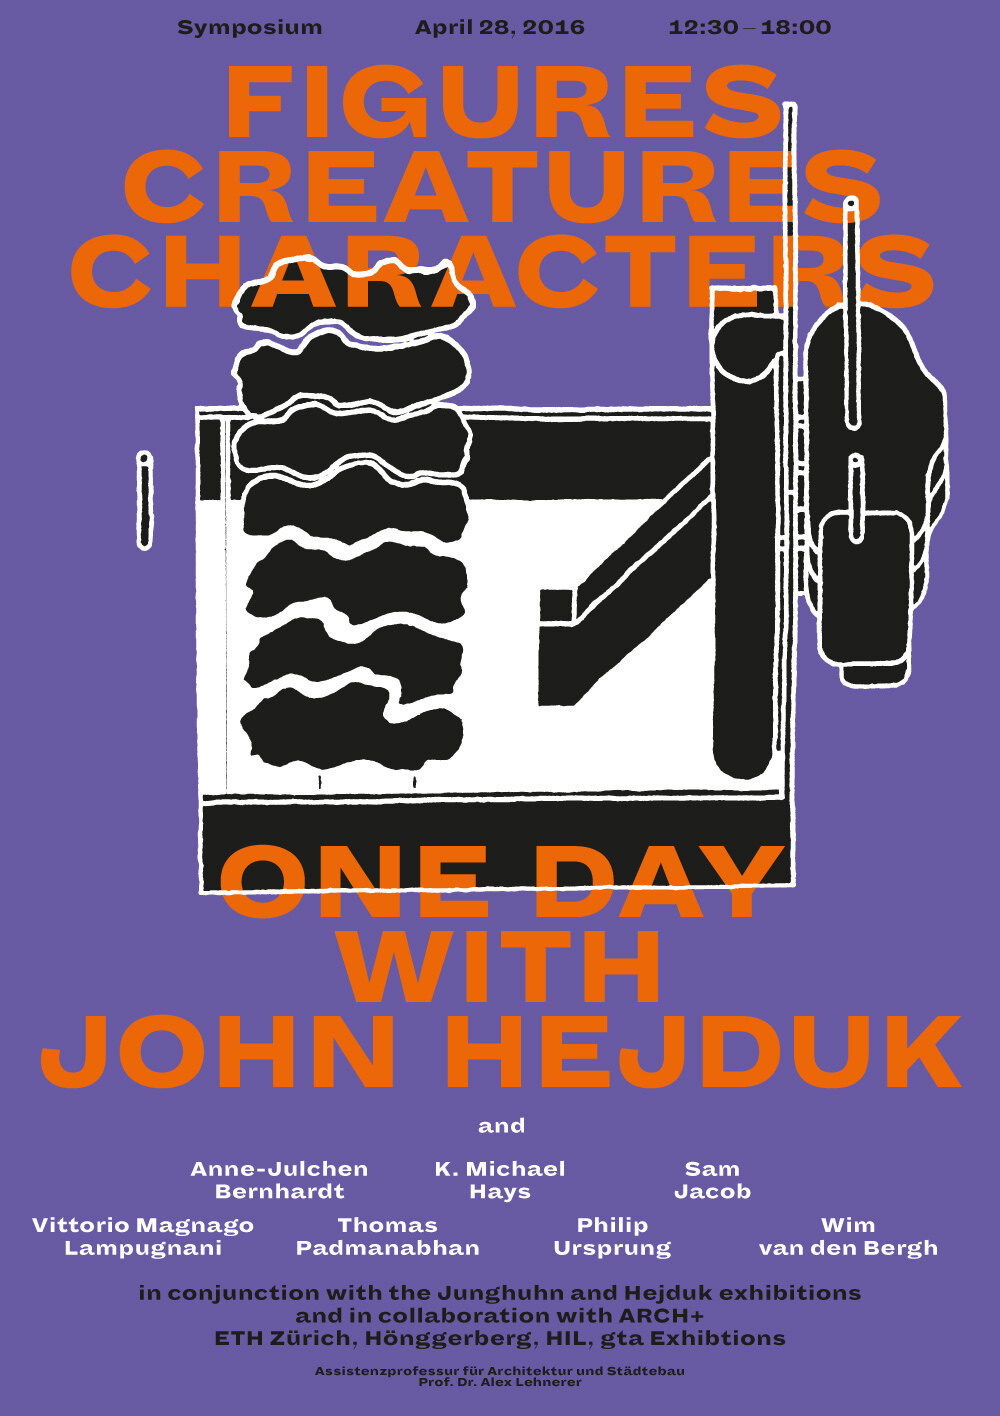 ARCH+ feat. One Day with John Hejduk